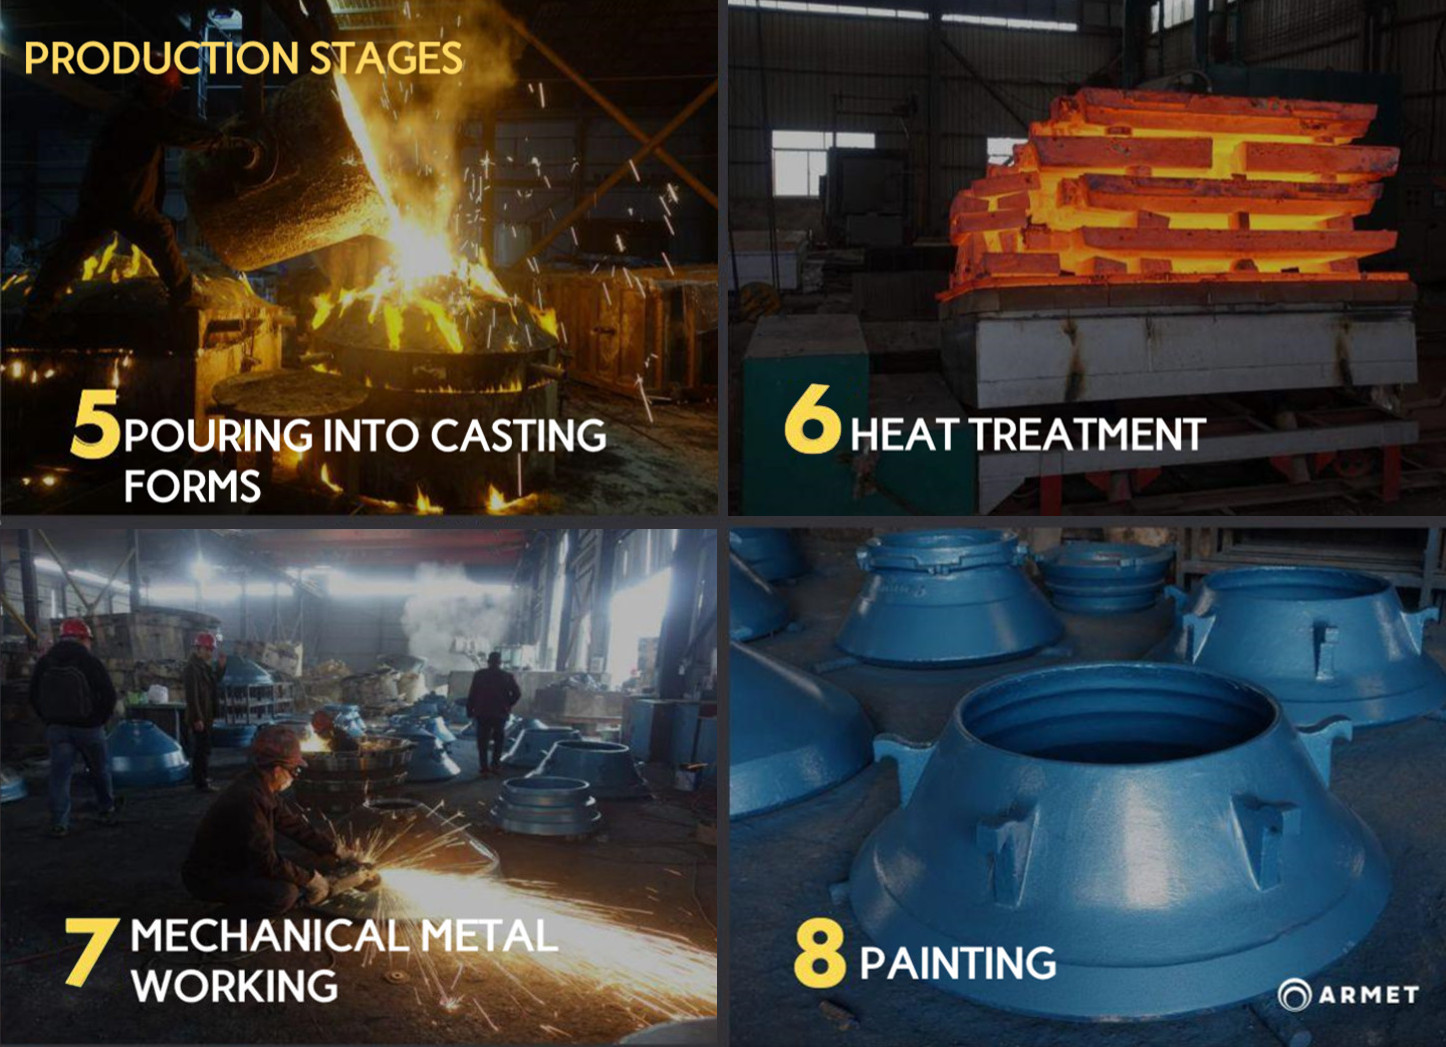 Armet production stages